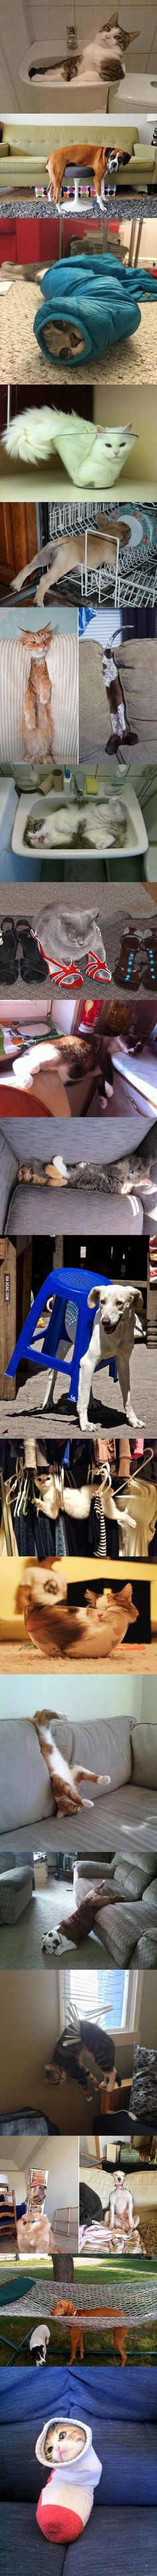 Pets Stuck in Odd Places But Don't Seem to Mind